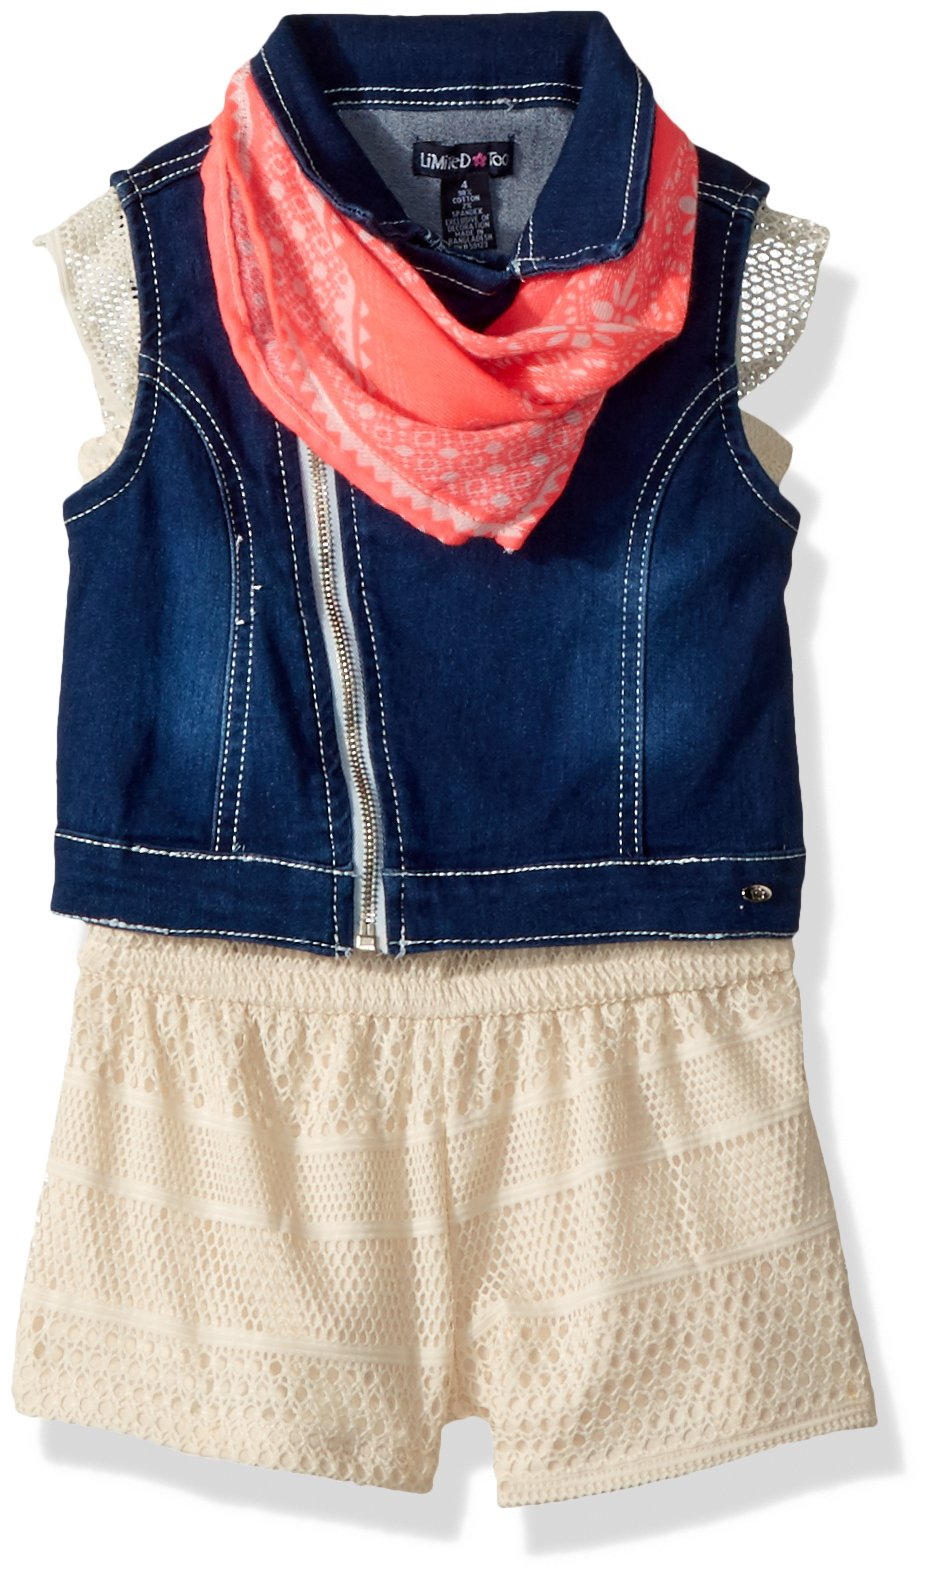 Limited Too Toddler Girls' Romper, Denim Motorcycle Vest with Bandana Vanilla, 4T